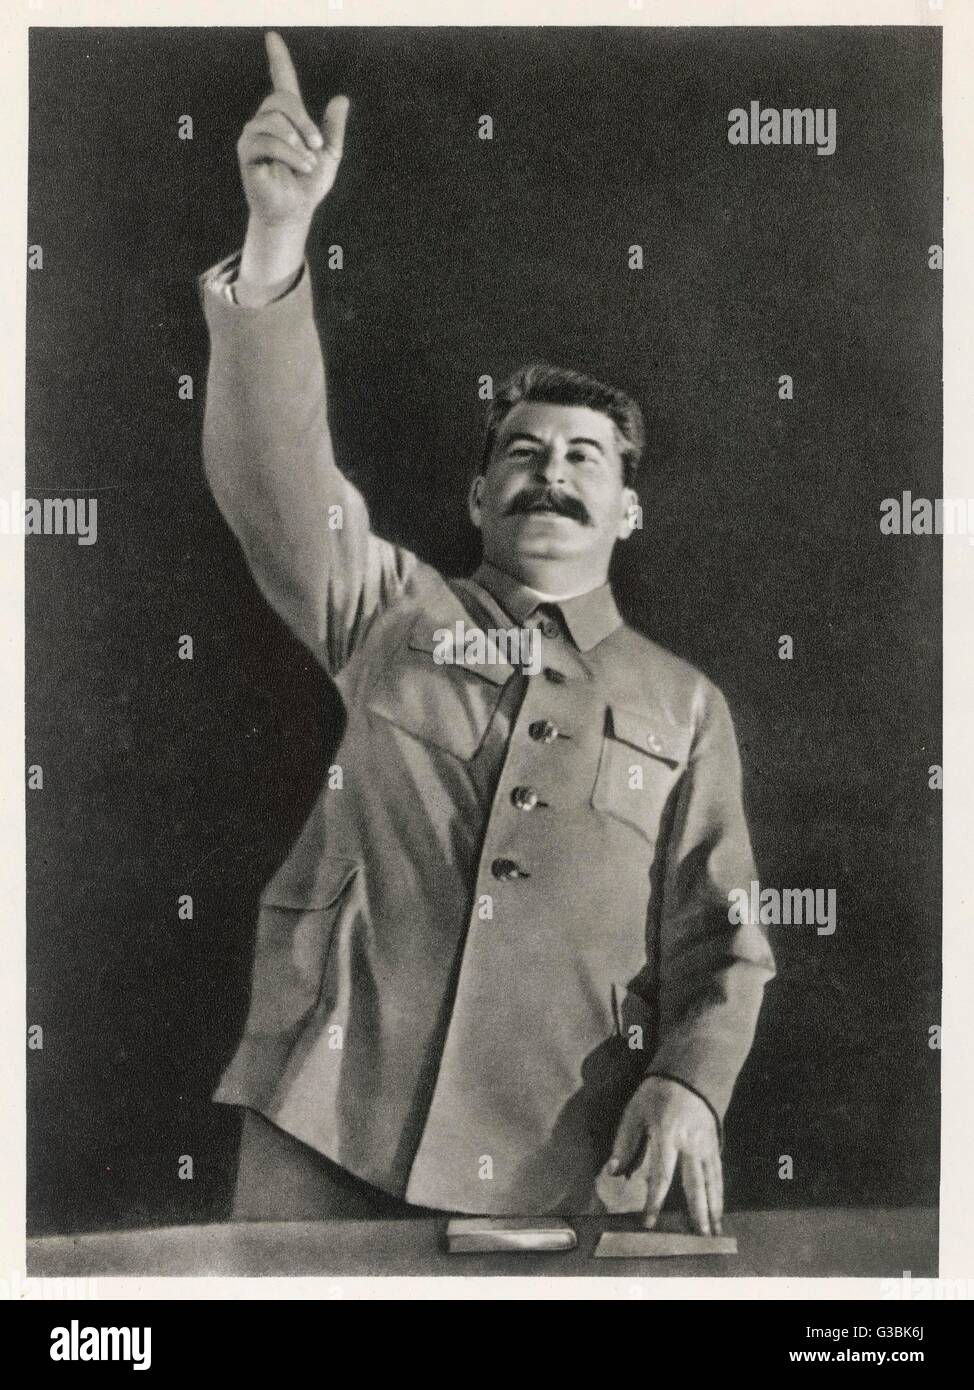 JOSEF STALIN orating Datum: 1879-1953 Stockfoto